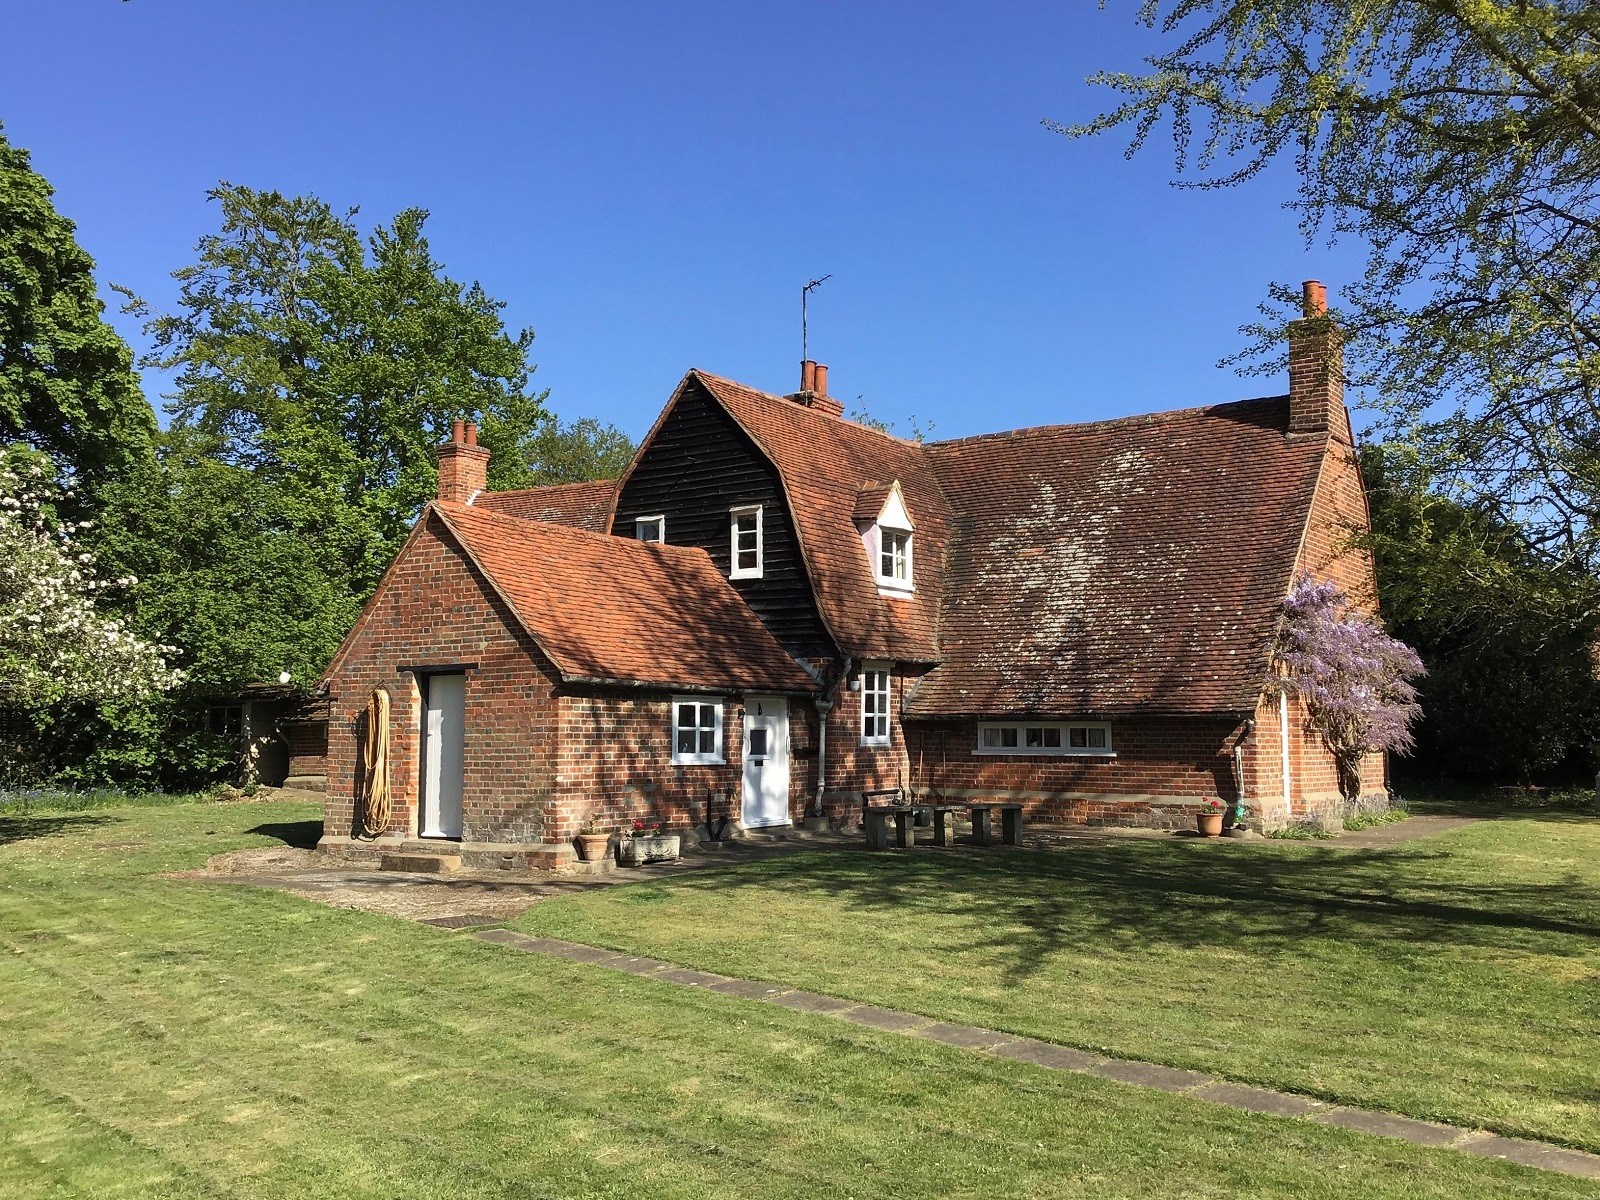 Carters Lane, Wickham Bishops, Witham, Essex, CM8